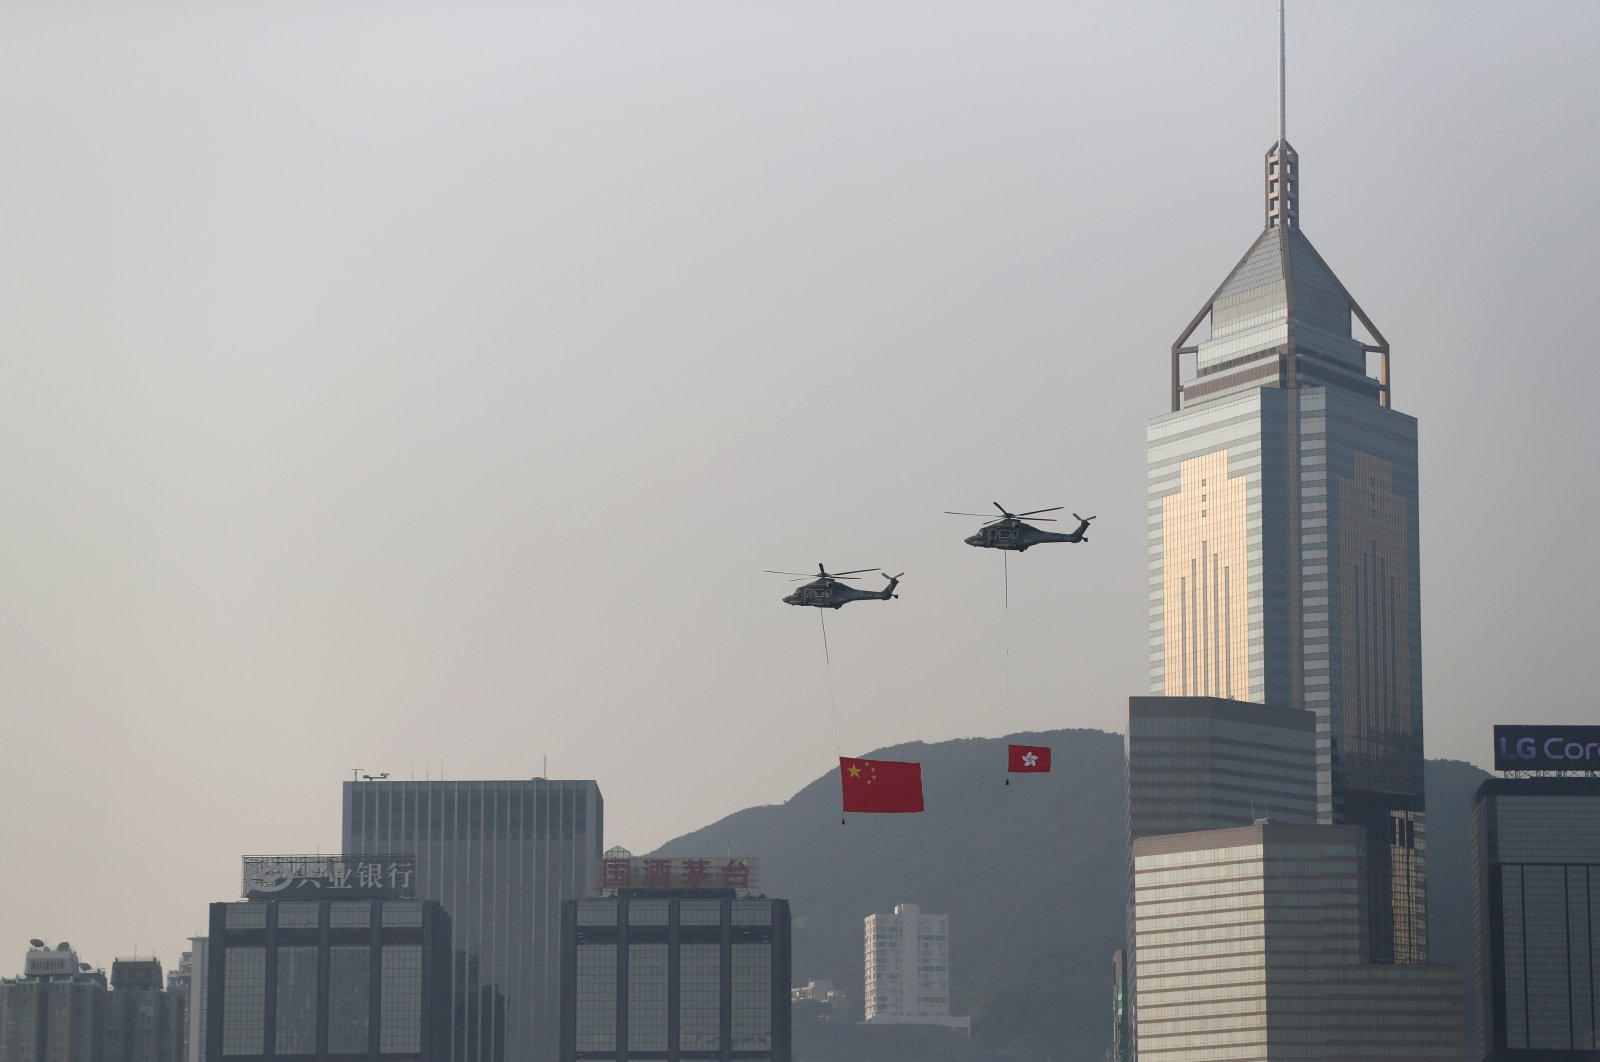 Helicopters carrying China's national flag and Hong Kong's flag fly past the skyline of Victoria Harbour on National Day in Hong Kong, China, Oct. 1, 2019. (Reuters Photo)